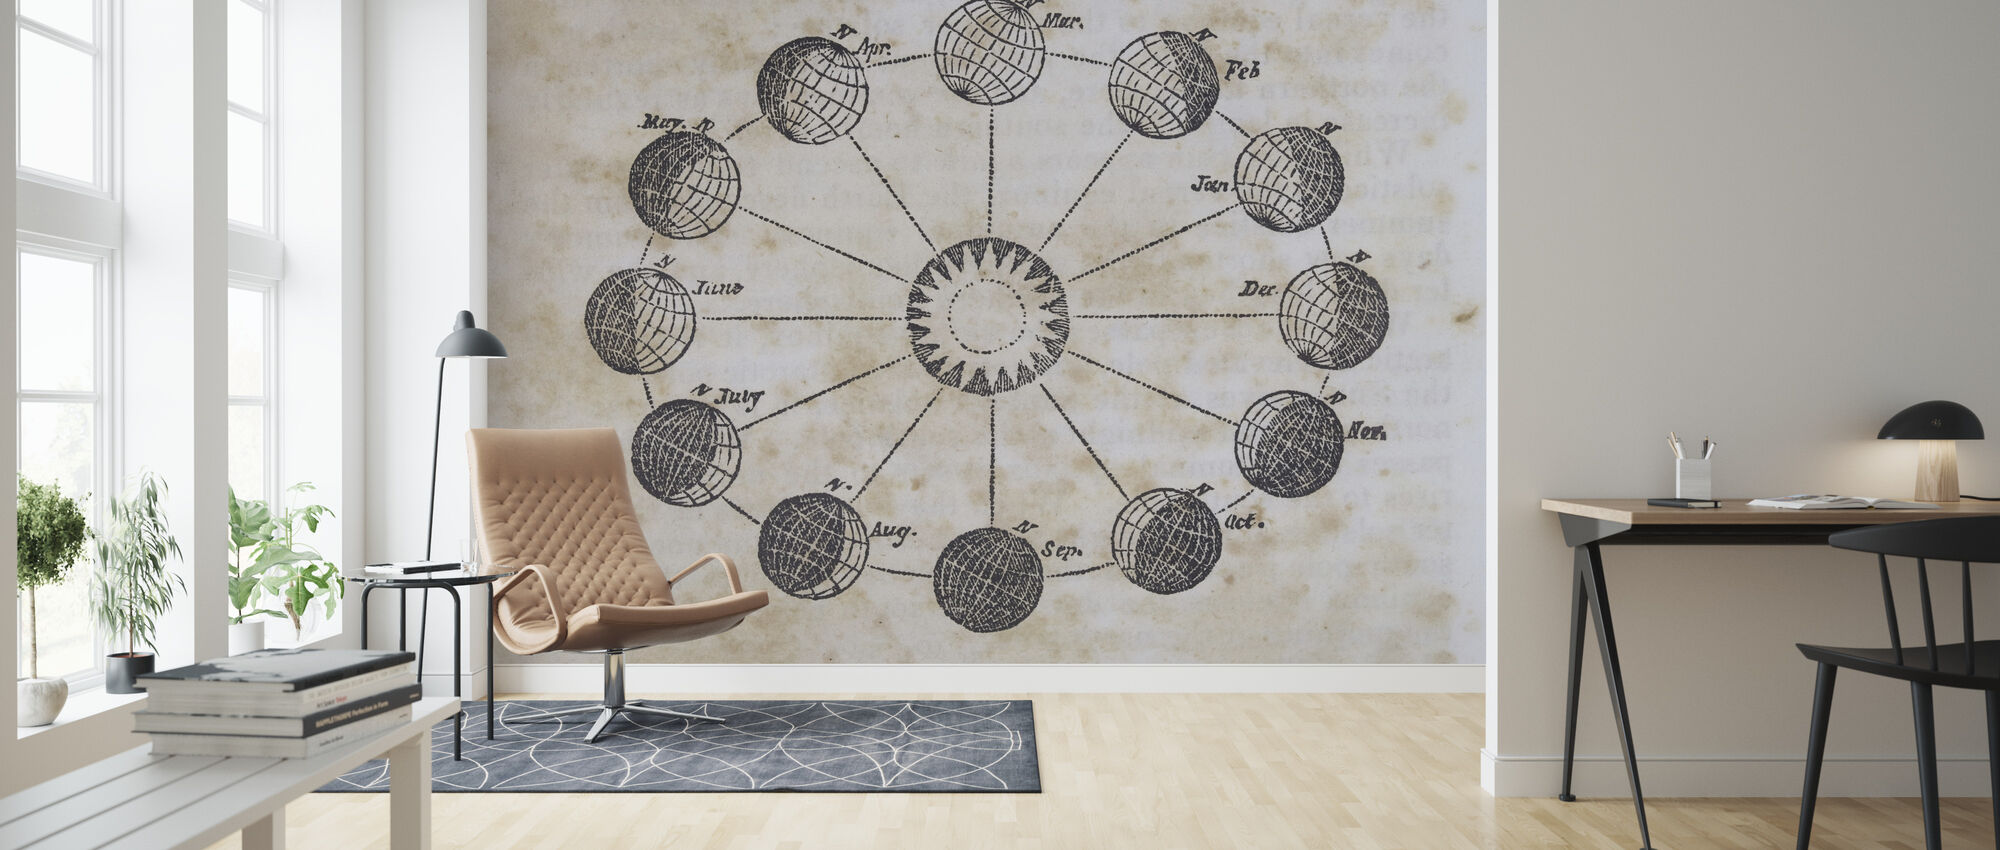 Geography of the Heavens VII - Wallpaper - Living Room